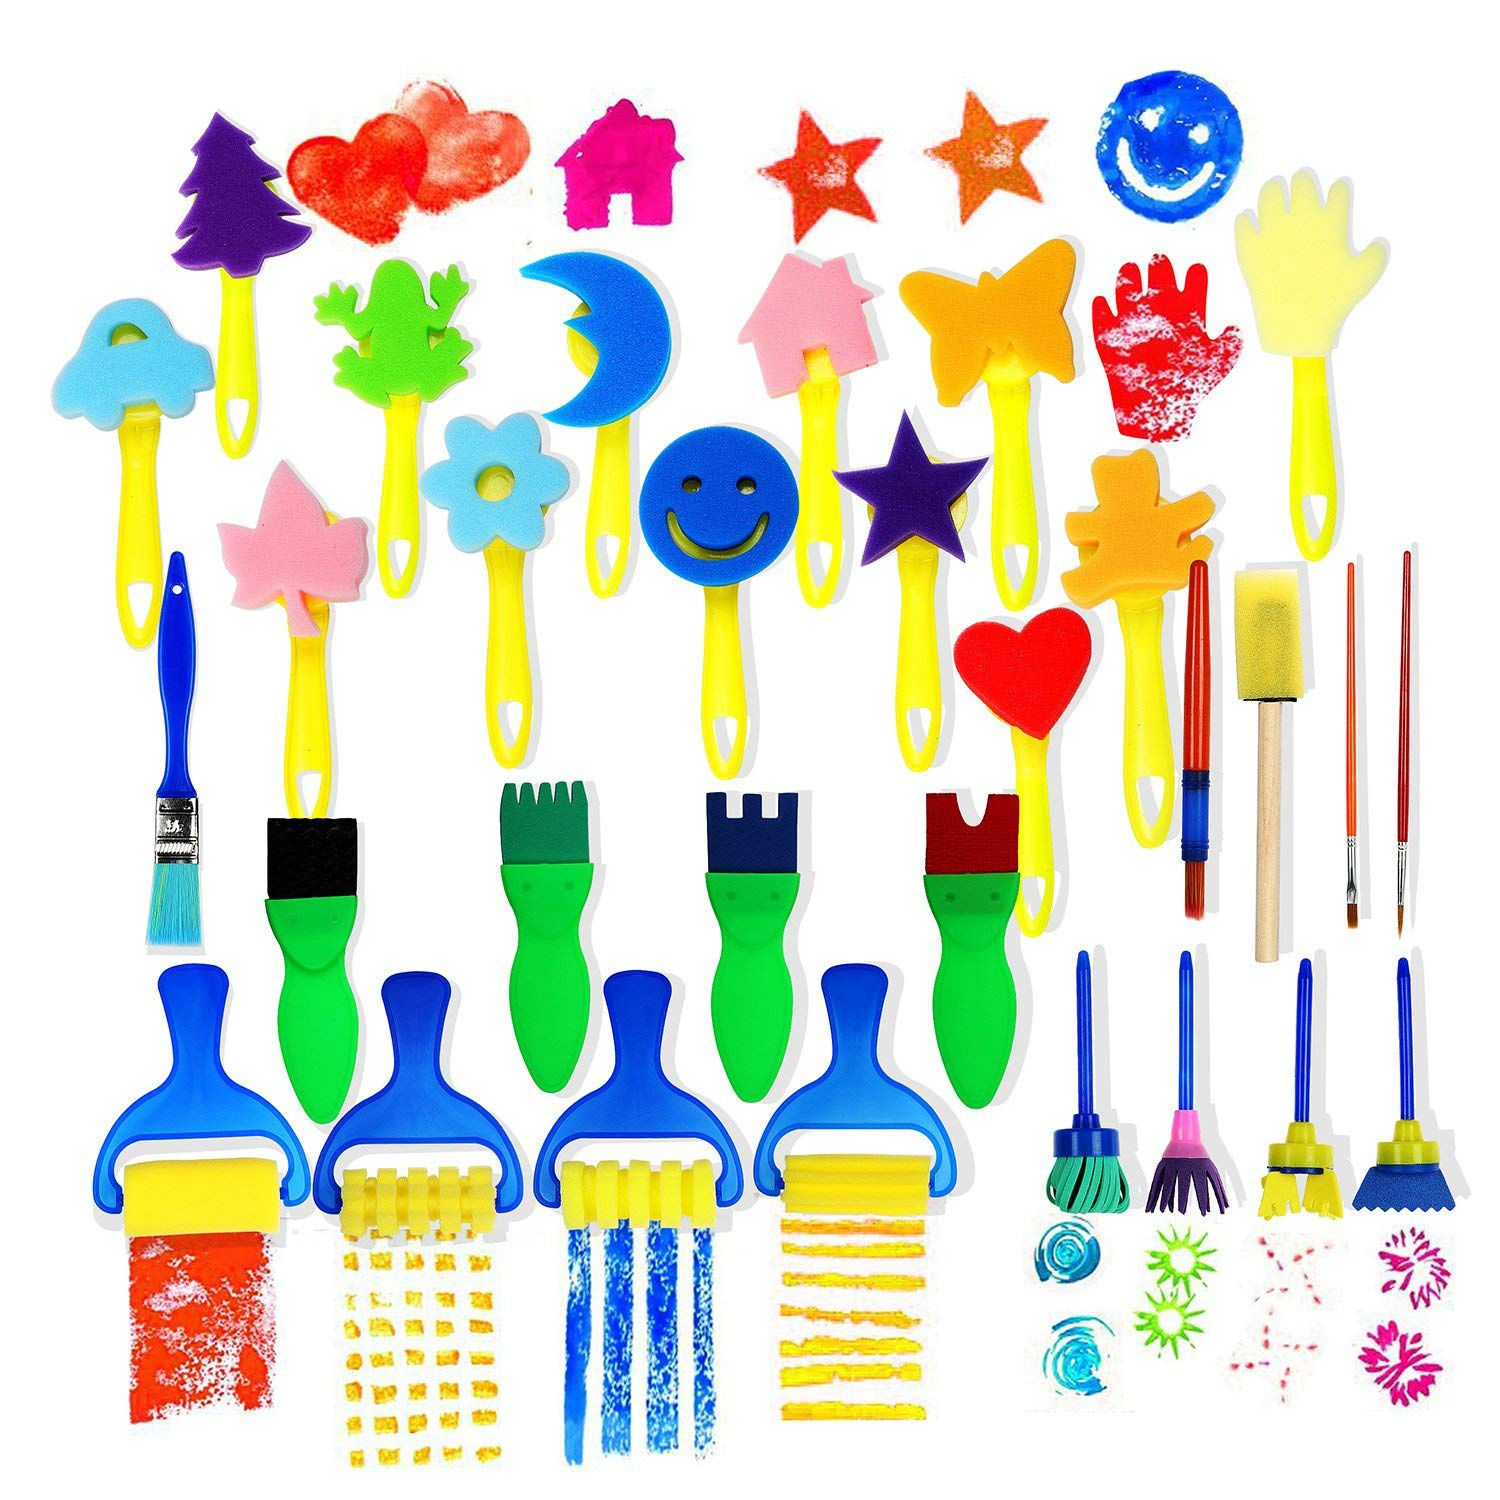 30pcs Children Sponge Paint Brushes Drawing Tools for Children Early Painting Arts Crafts DIY30pcs Children Sponge Paint Brushes Drawing Tools for Children Early Painting Arts Crafts DIY